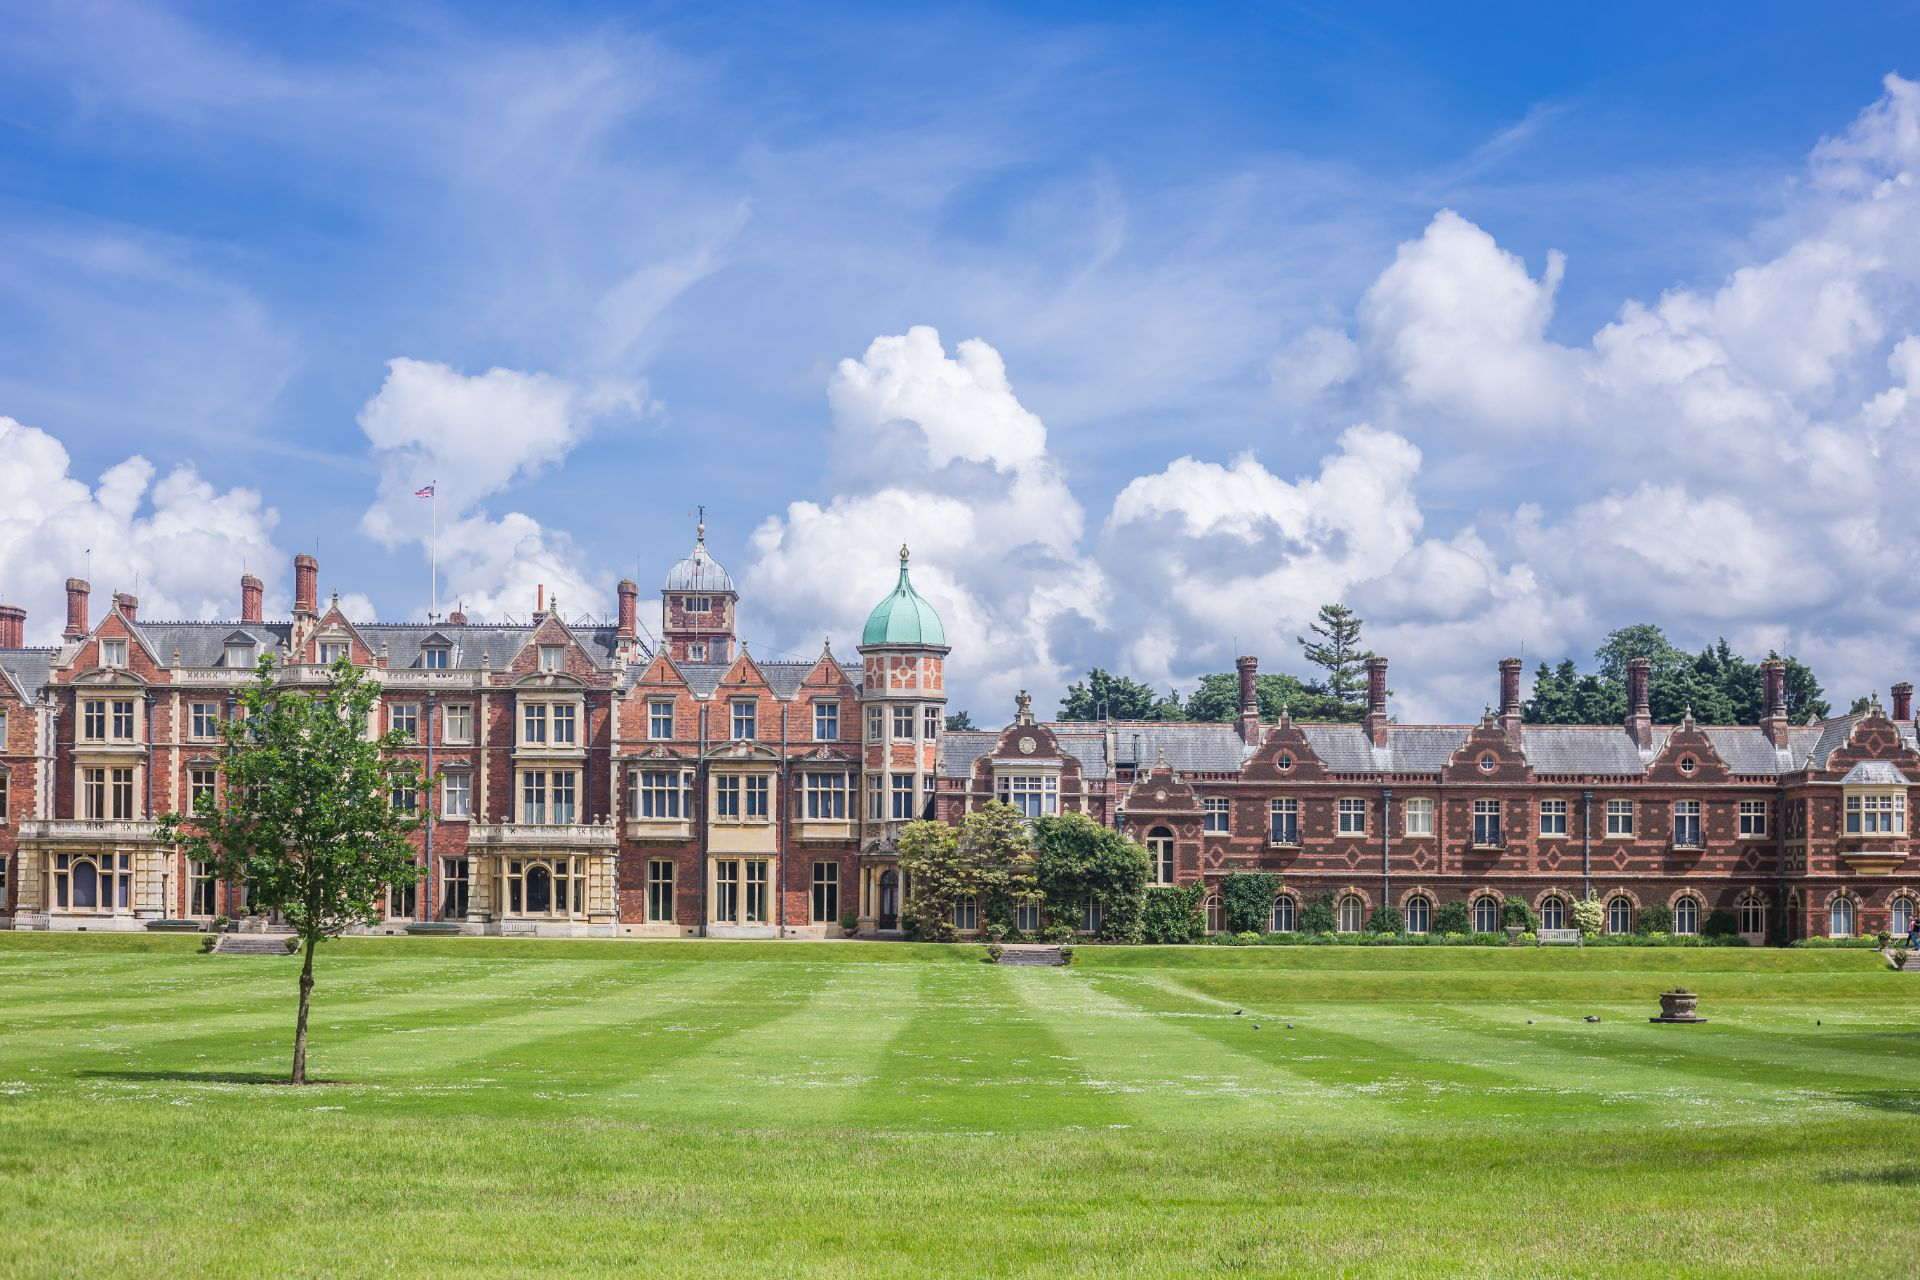 old-historic-country-house-with-green-lawn-in-front-on-sandringham-estate-day-trips-from-peterborough